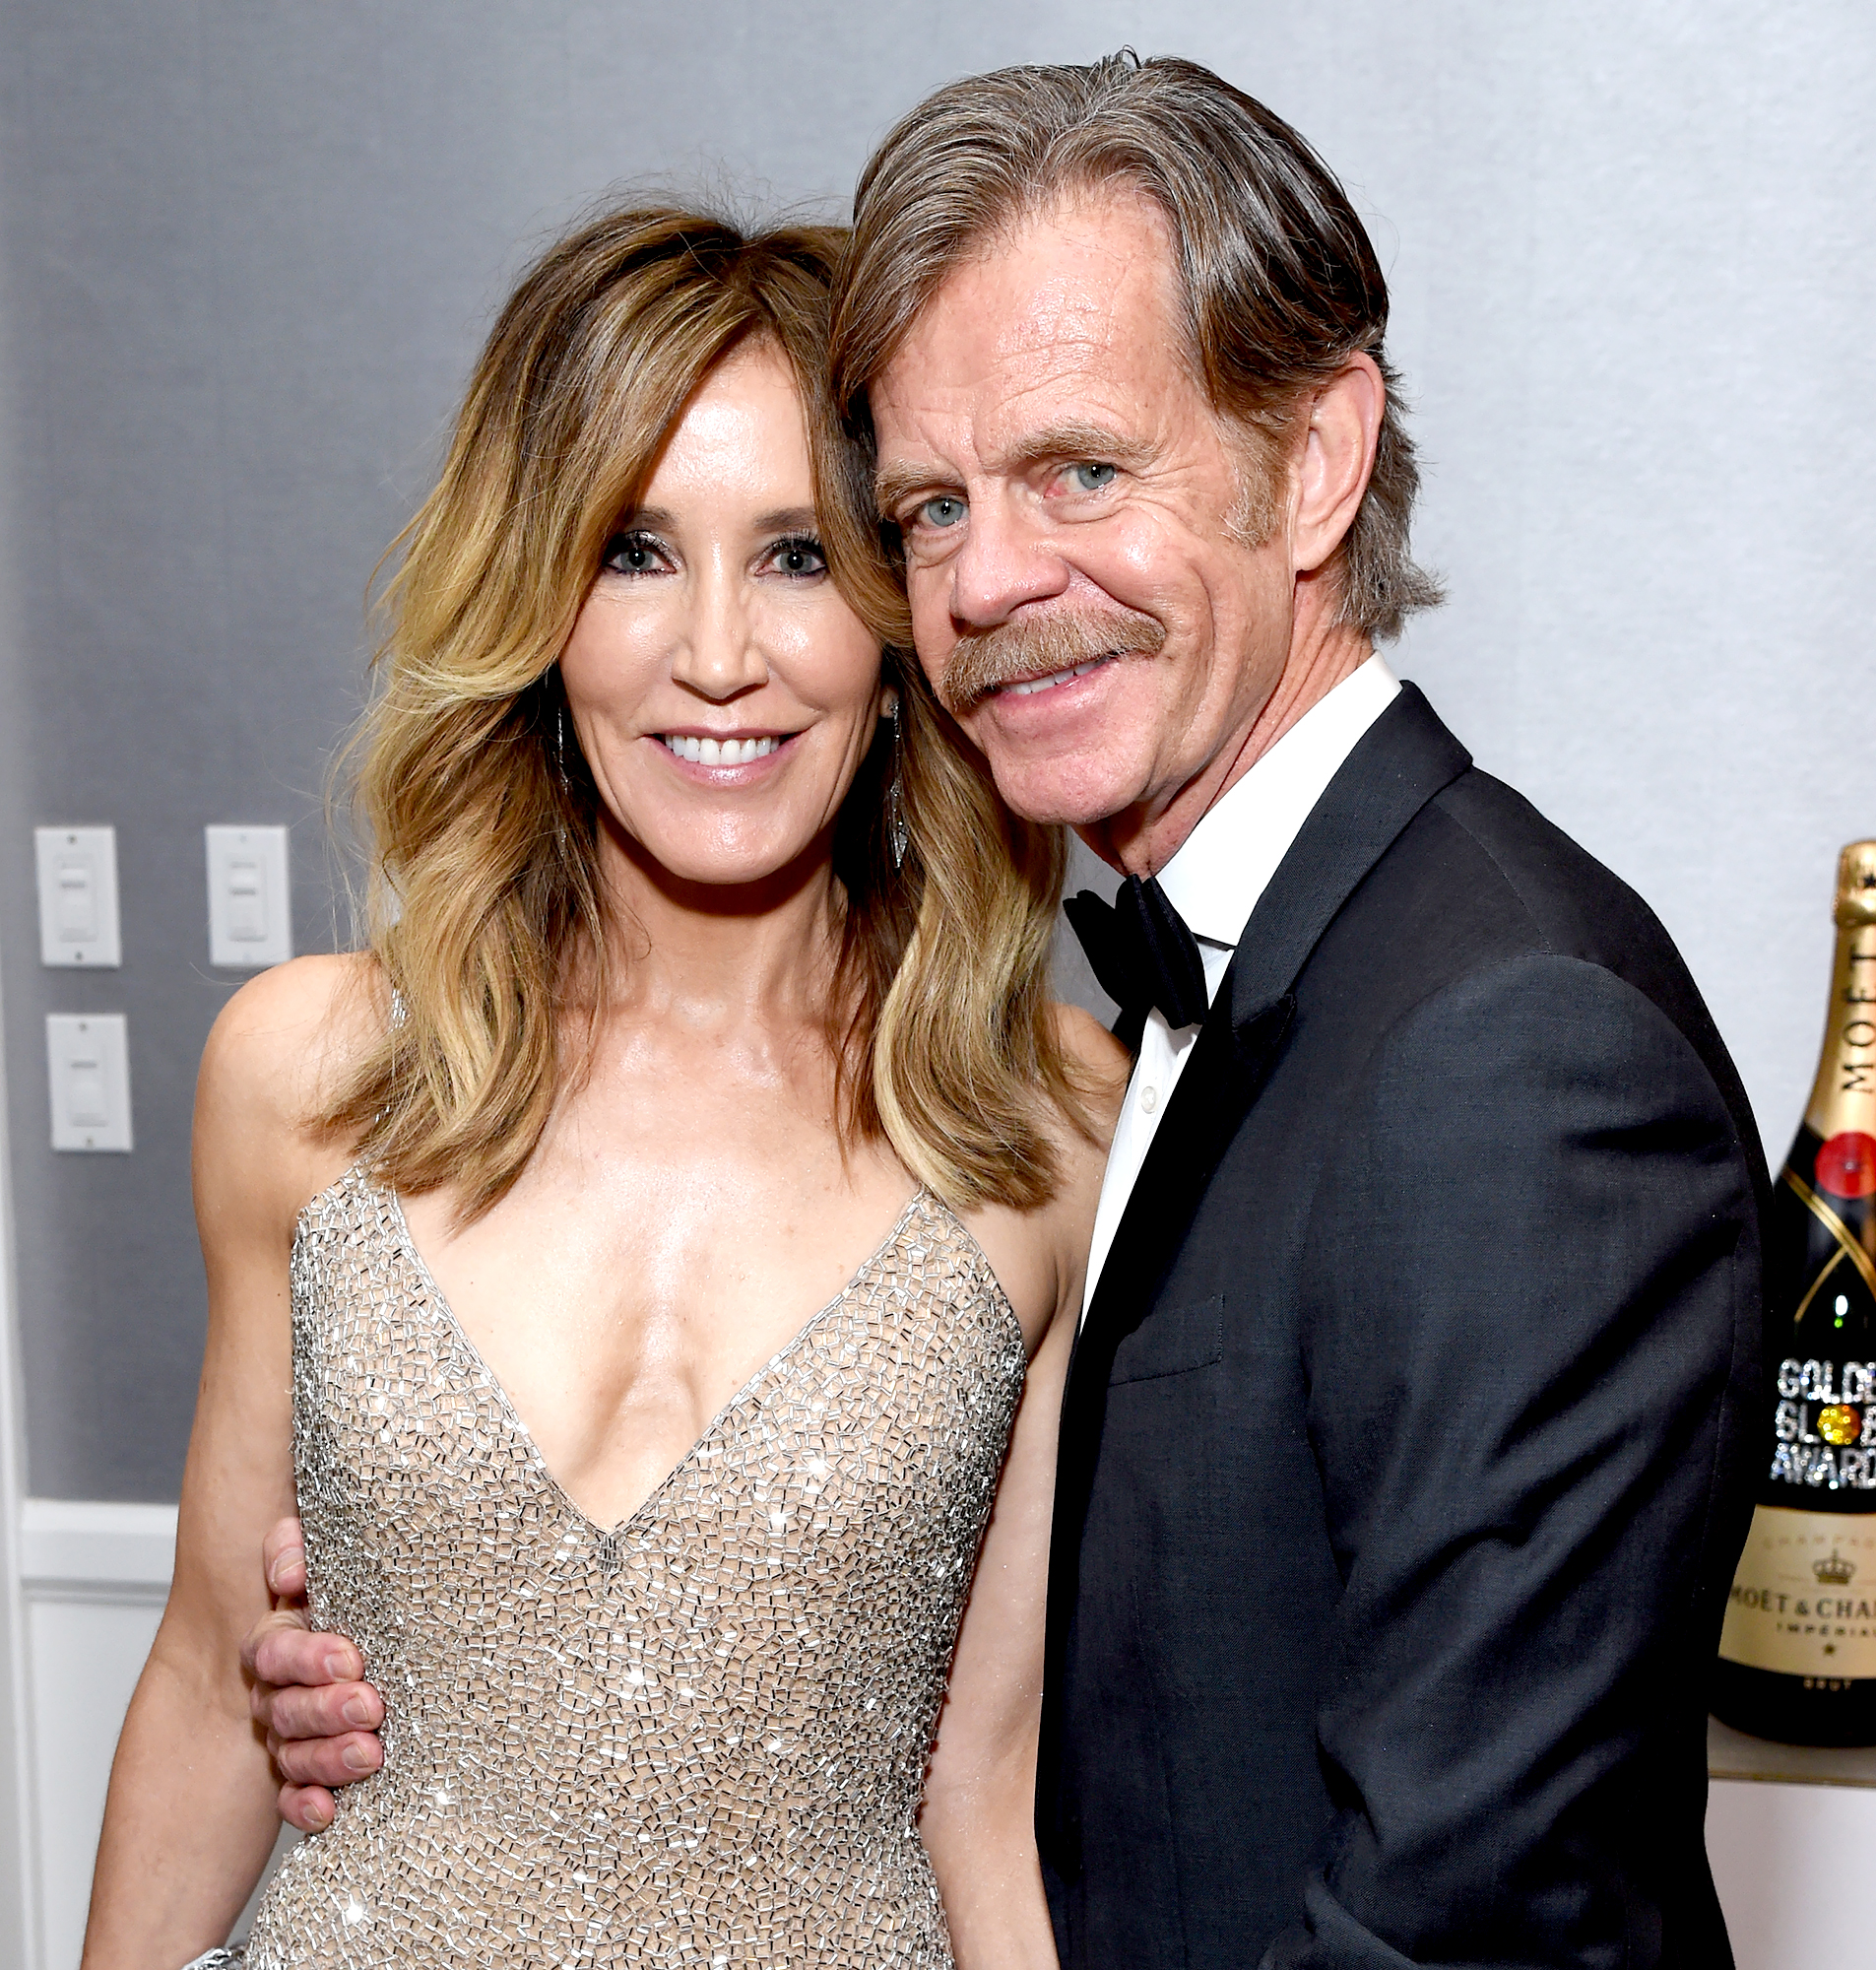 Felicity-Huffman-and-William-H.-Macy